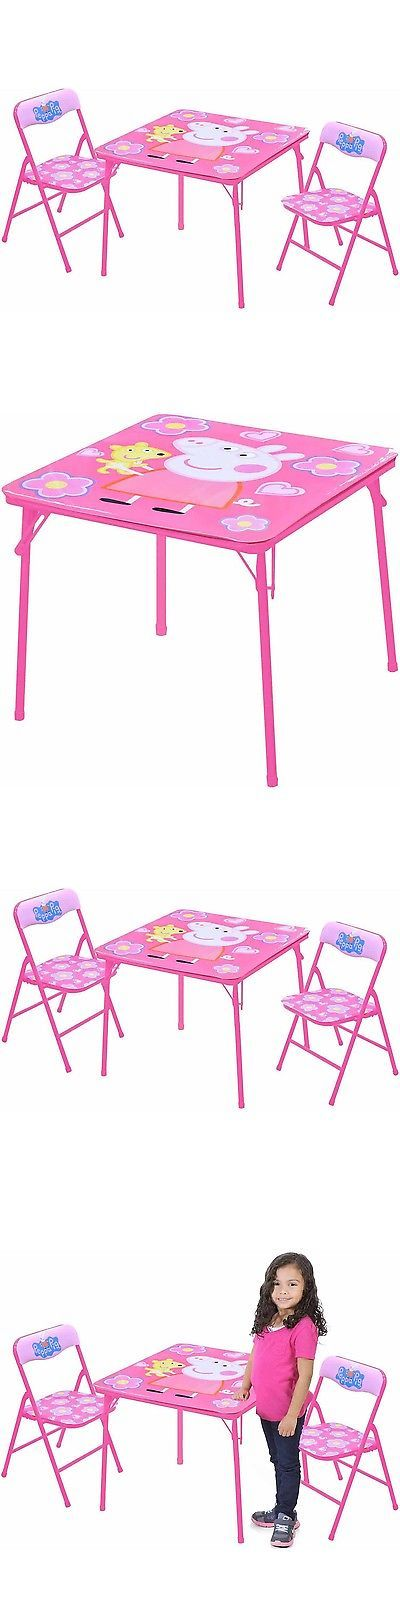 Sofas and Armchairs 134648: Peppa Pig Table And Chairs Set -> BUY IT NOW ONLY: $41.95 on eBay!